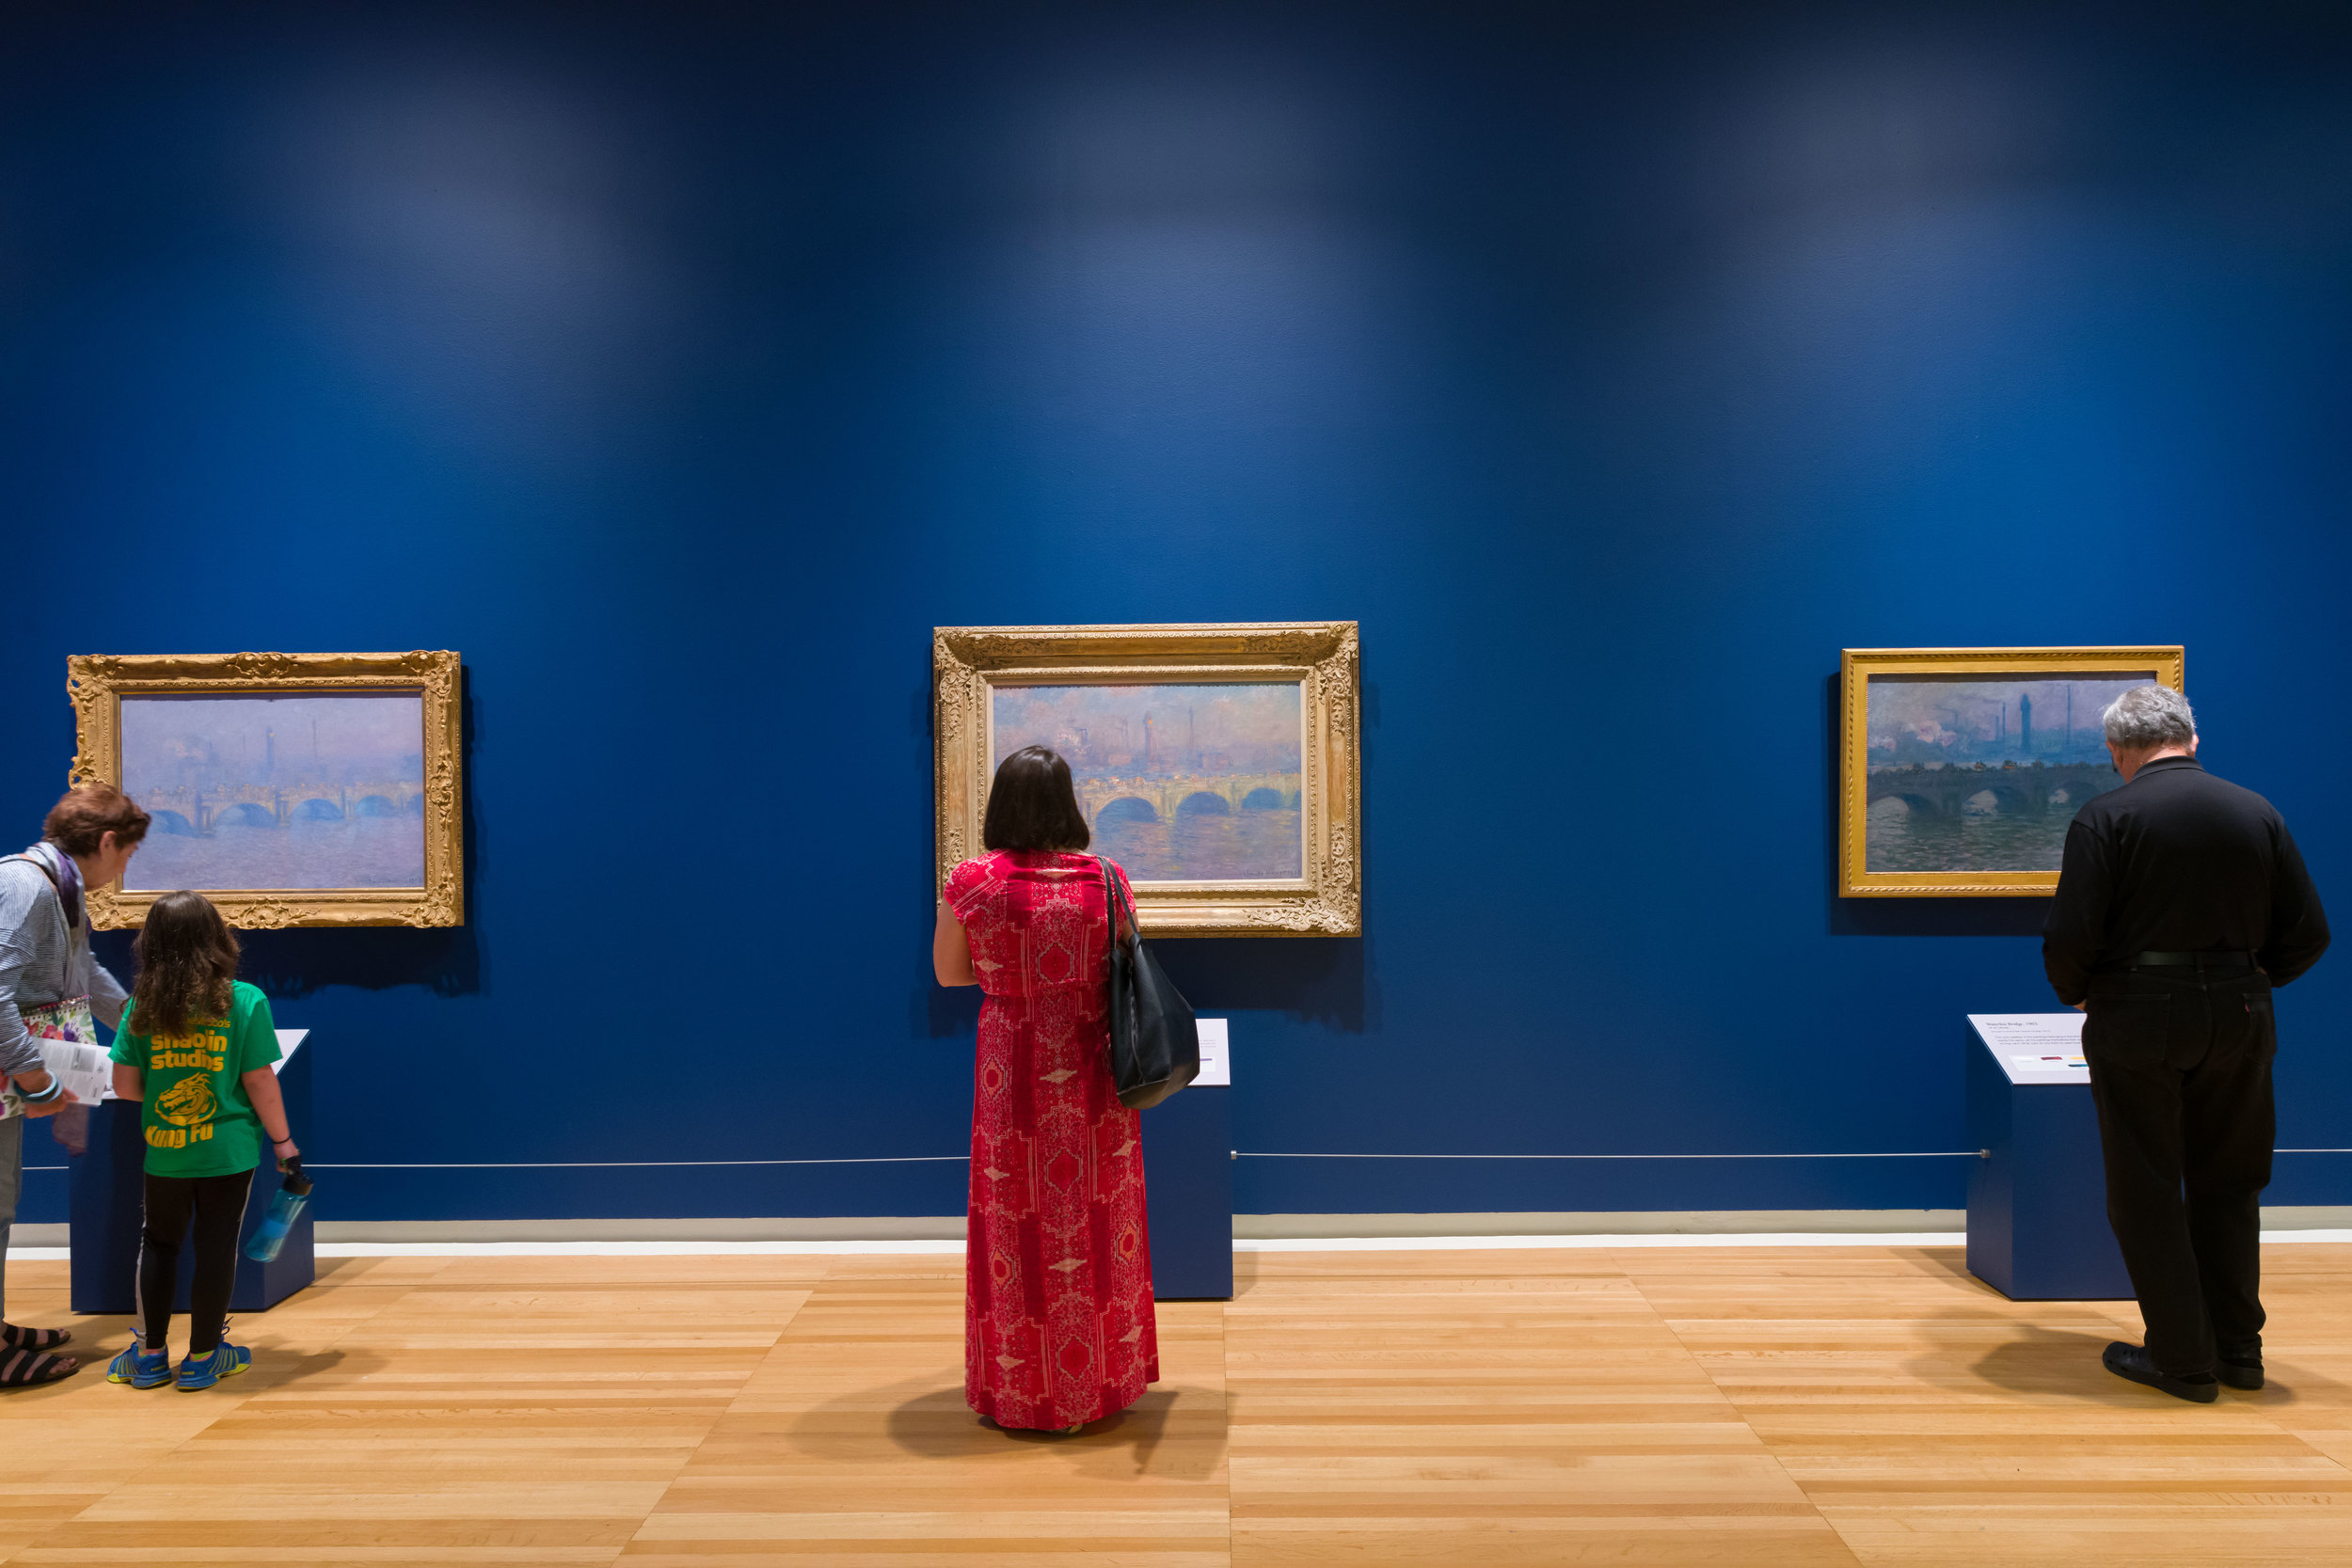 Installation view of Monet and the Modern City, 2019, Carnegie Museum of Art. Photo: Bryan Conley